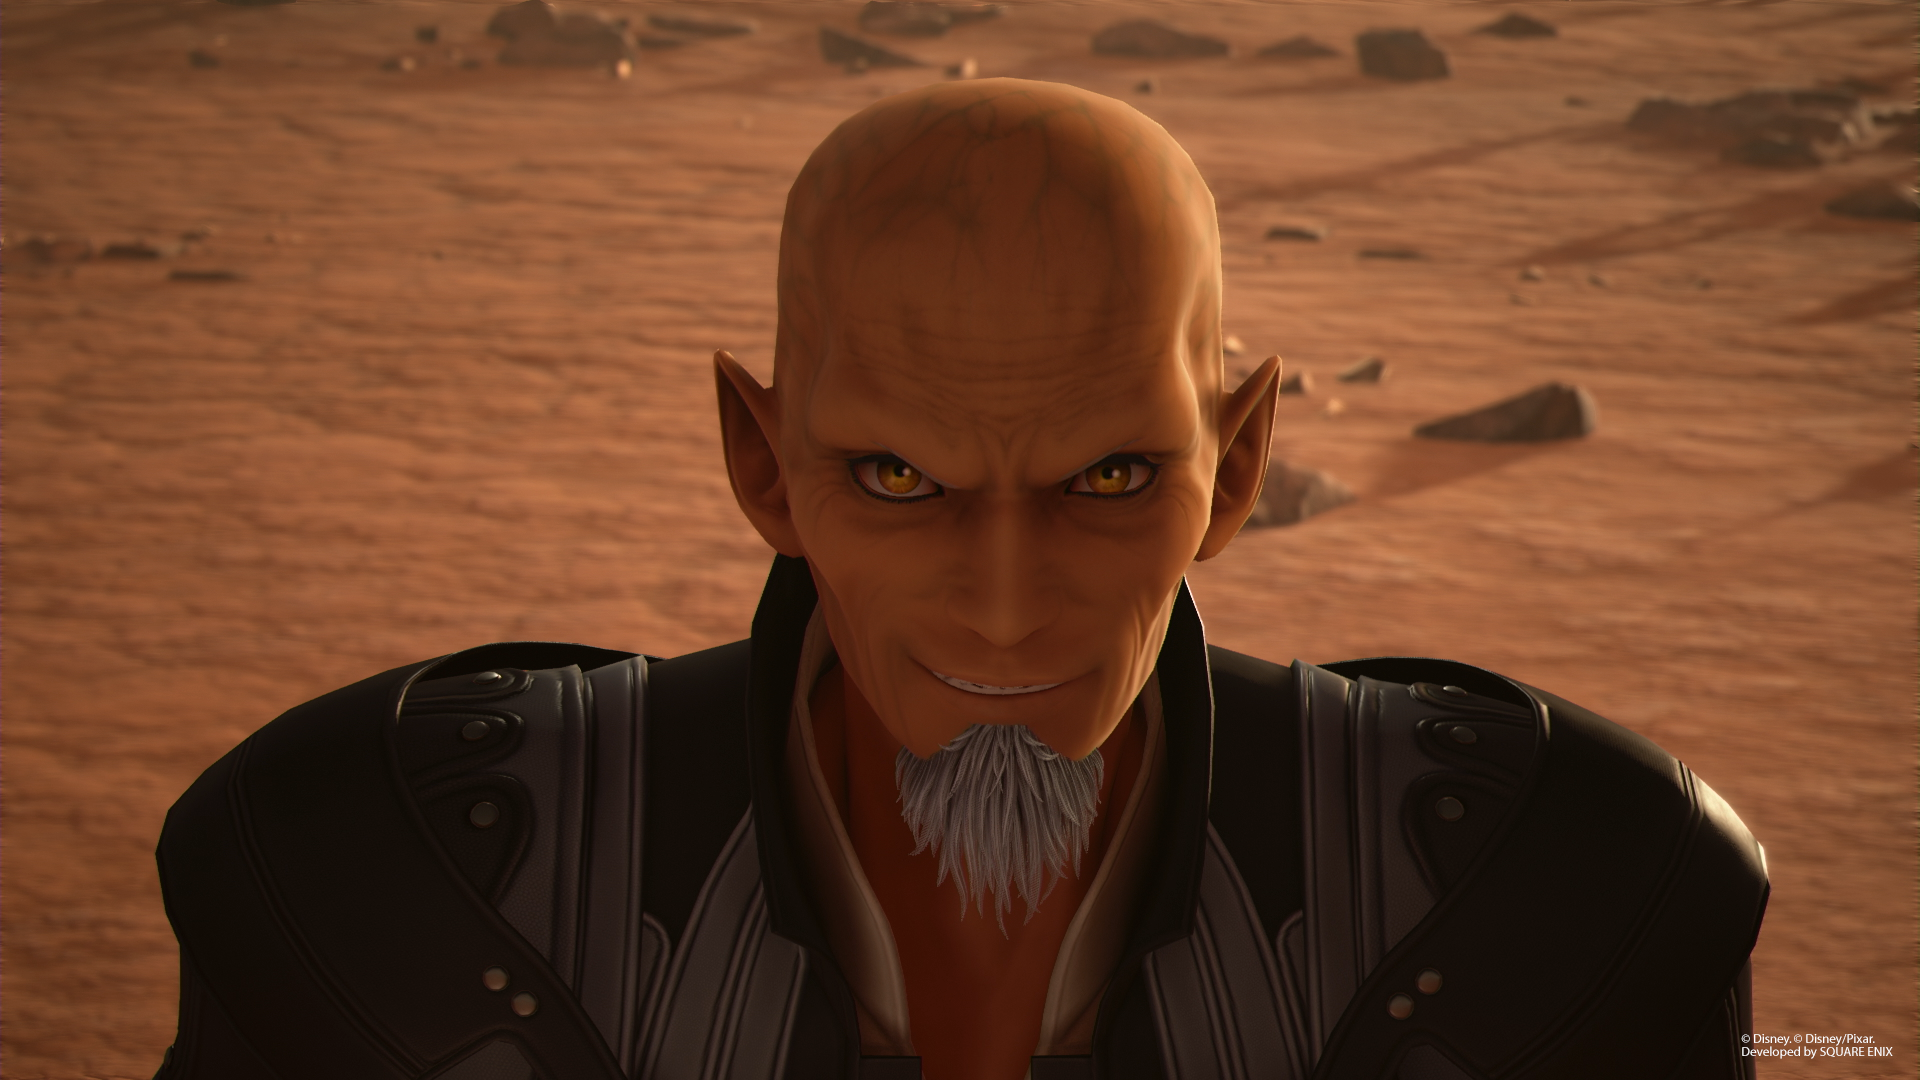 Kingdom Hearts 3 Xehanort leak